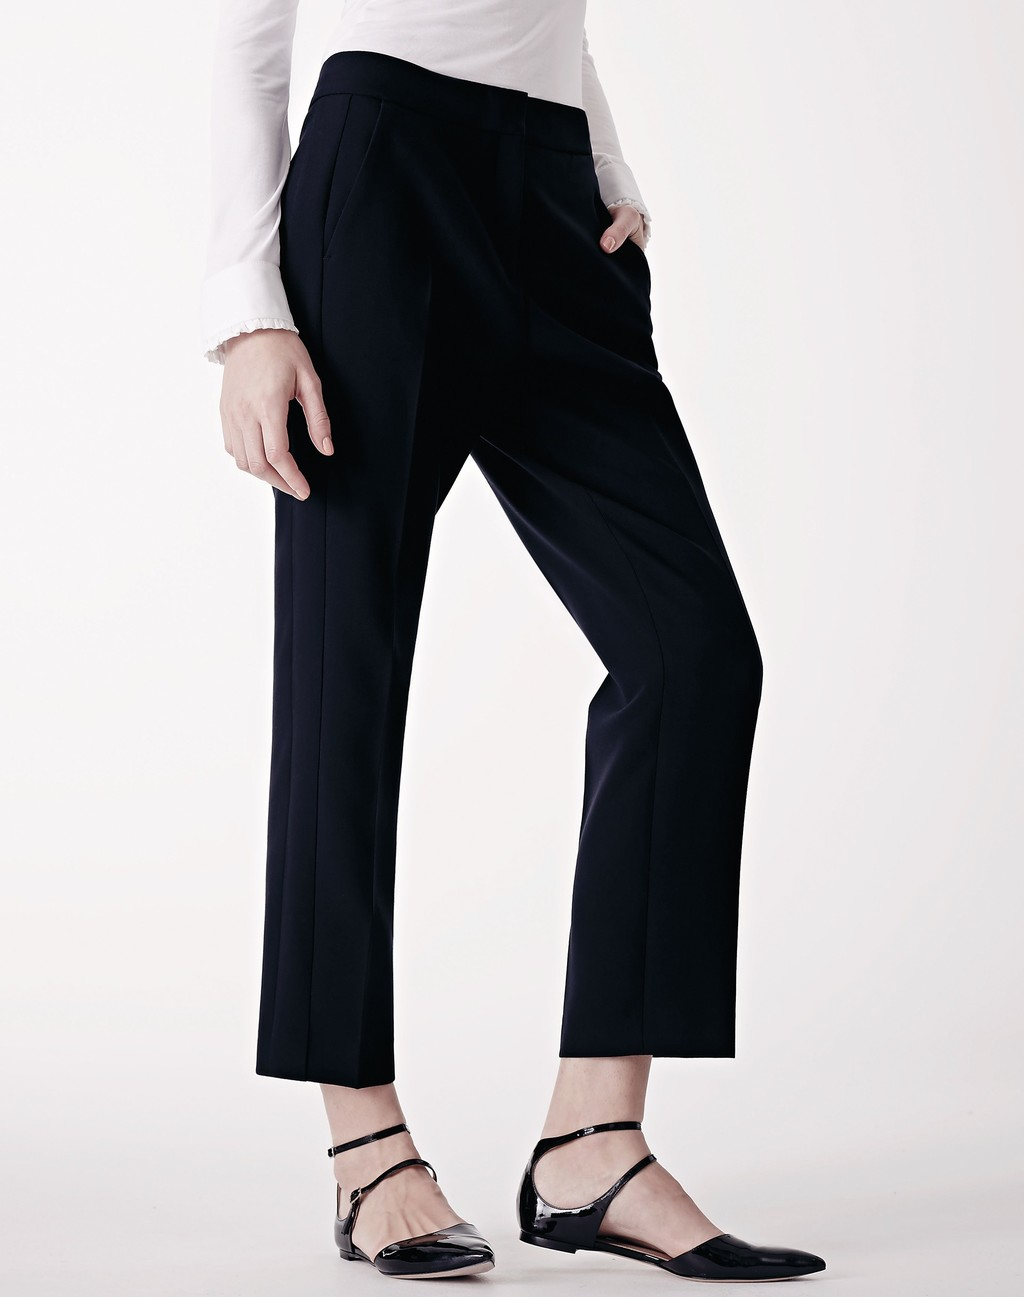 Slim Crop Trouser Navy - pattern: plain; hip detail: front pockets at hip; waist: high rise; predominant colour: navy; length: calf length; fibres: cotton - stretch; texture group: cotton feel fabrics; fit: slim leg; pattern type: fabric; style: standard; occasions: creative work; season: s/s 2016; wardrobe: basic